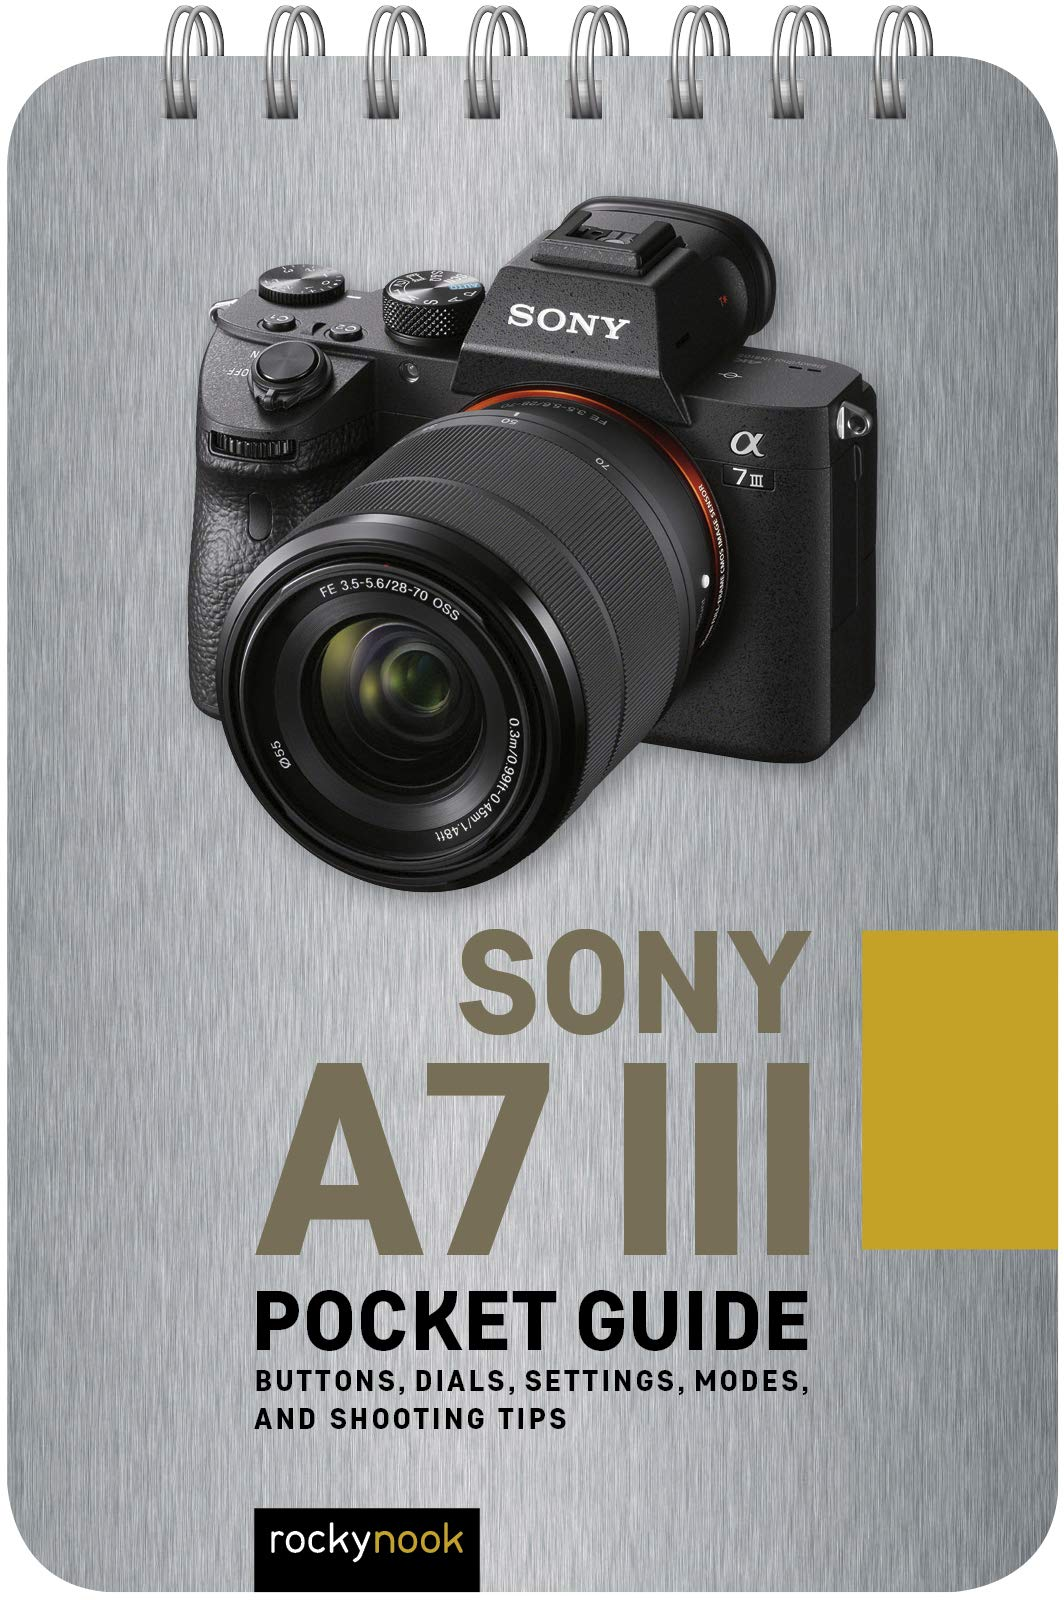 Image OfSony A7 III: Pocket Guide: Buttons, Dials, Settings, Modes, And Shooting Tips (The Pocket Guide Series For Photographers)